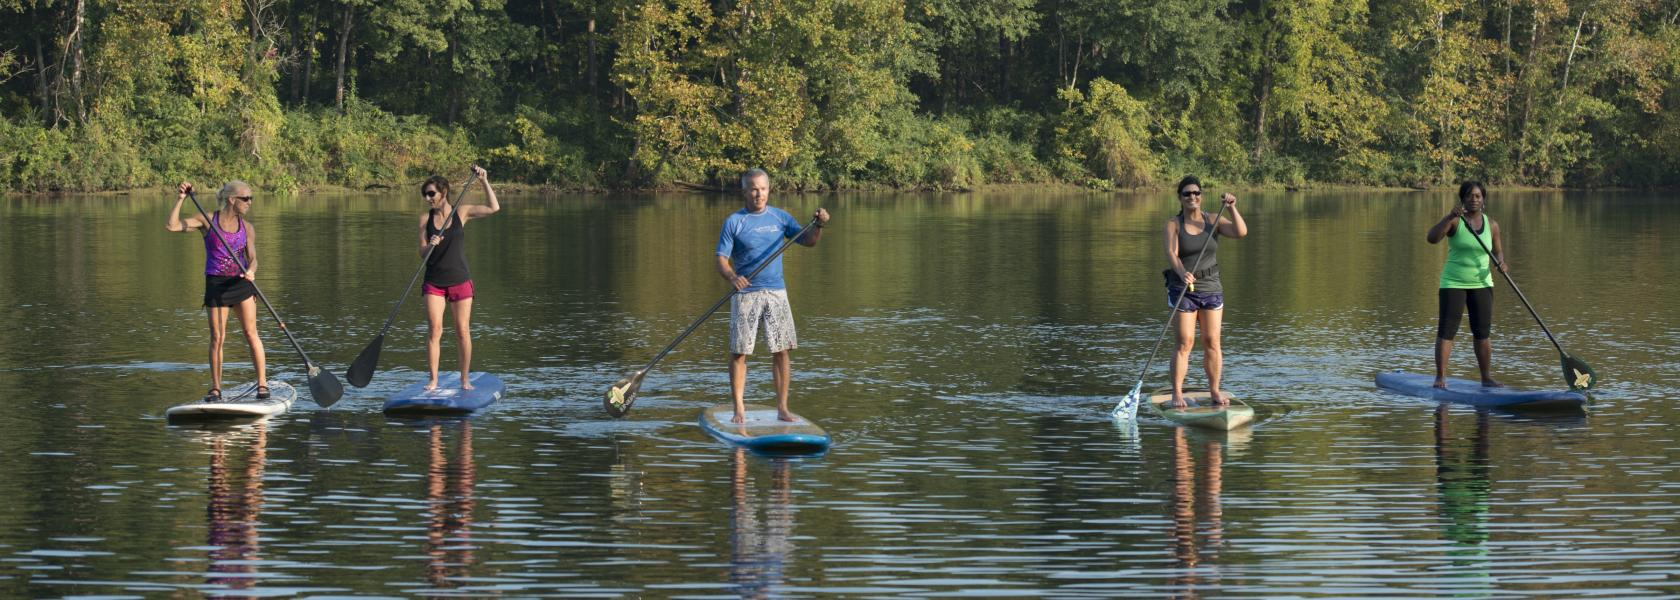 Water, Paddle Boarding, Outdoors